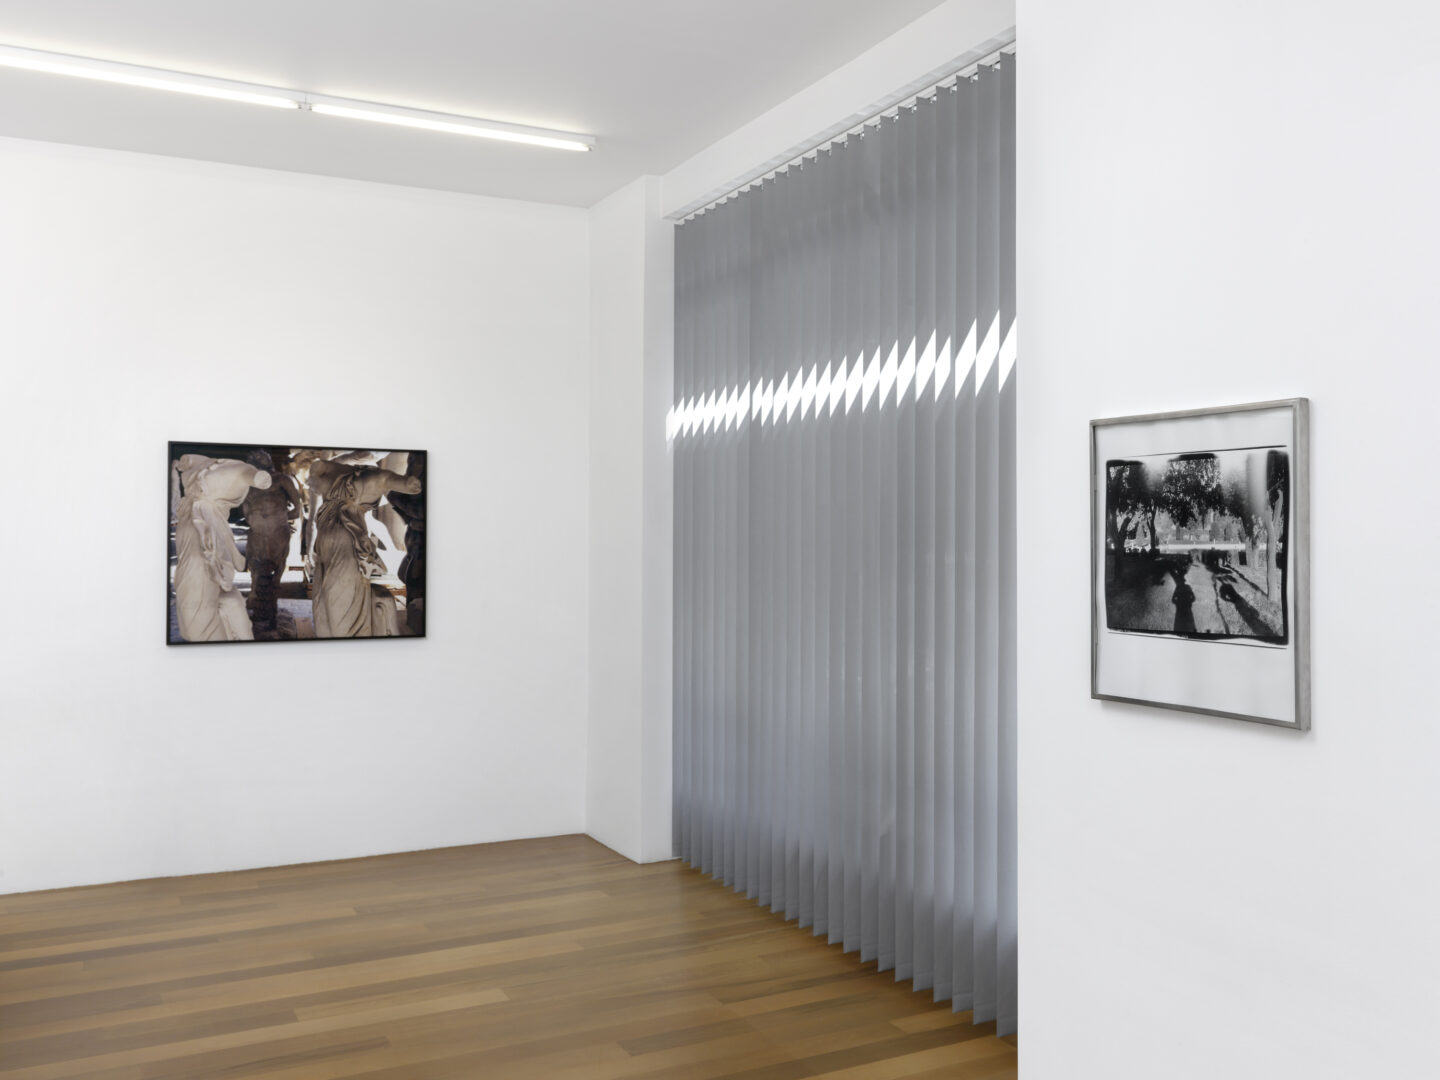 Exhibition View Groupshow by Albert Baronian «Le Choix d'Albert; view on Marie José Burki, Sans titre (gypso I), 2019 and Marc Trivier, Paradis perdu, 1980 -1990» at Xippas, Geneva / Photo: Annik Wetter